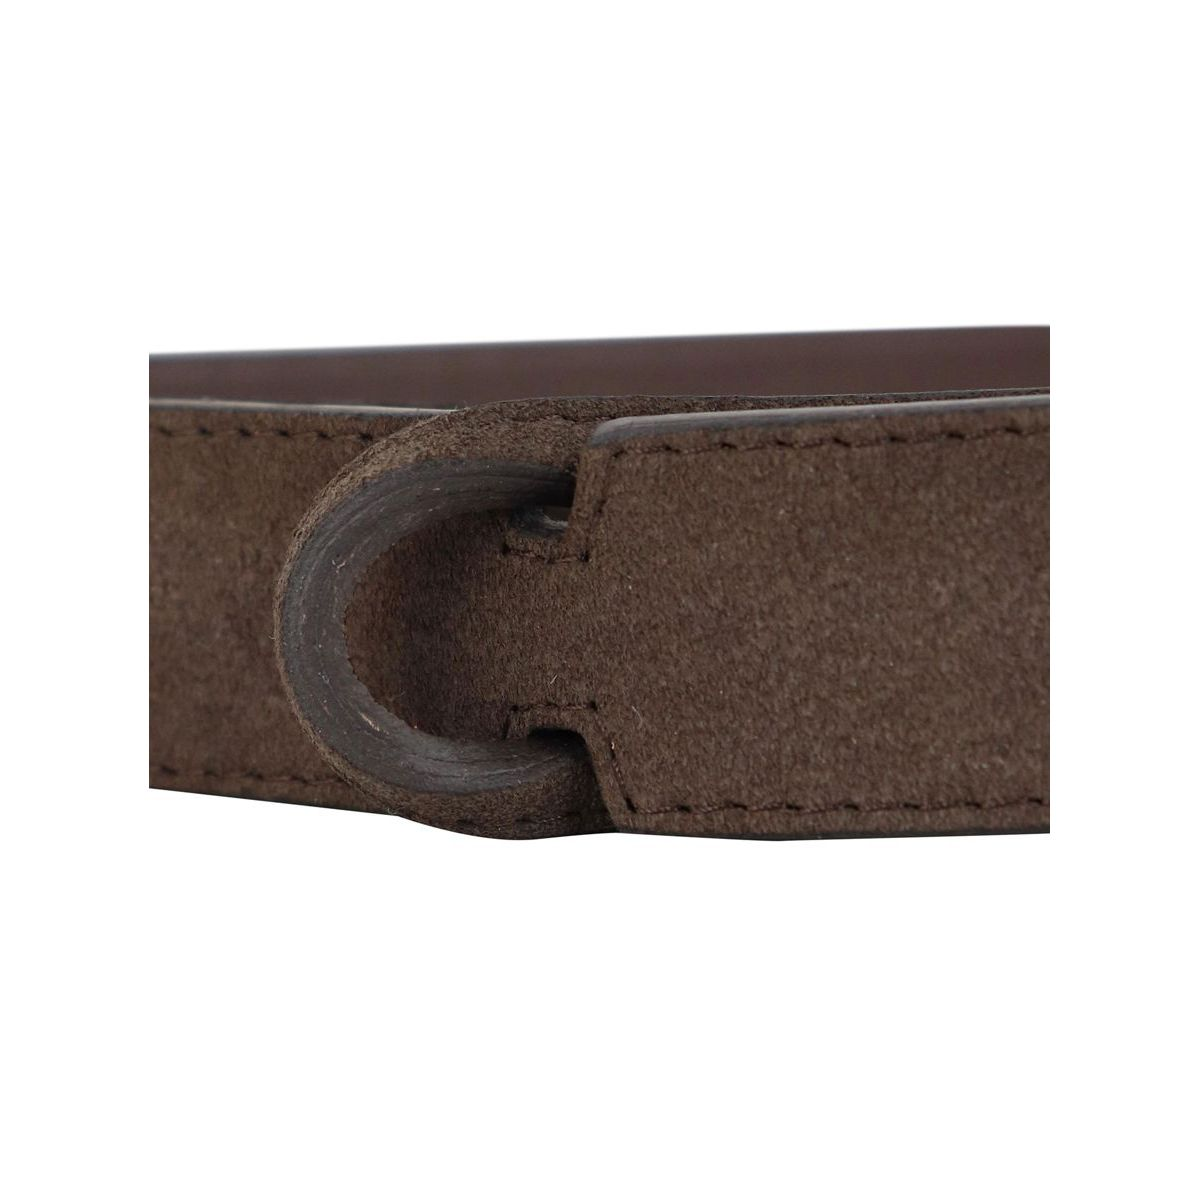 NO BUCKLE suede belt Moro Orciani